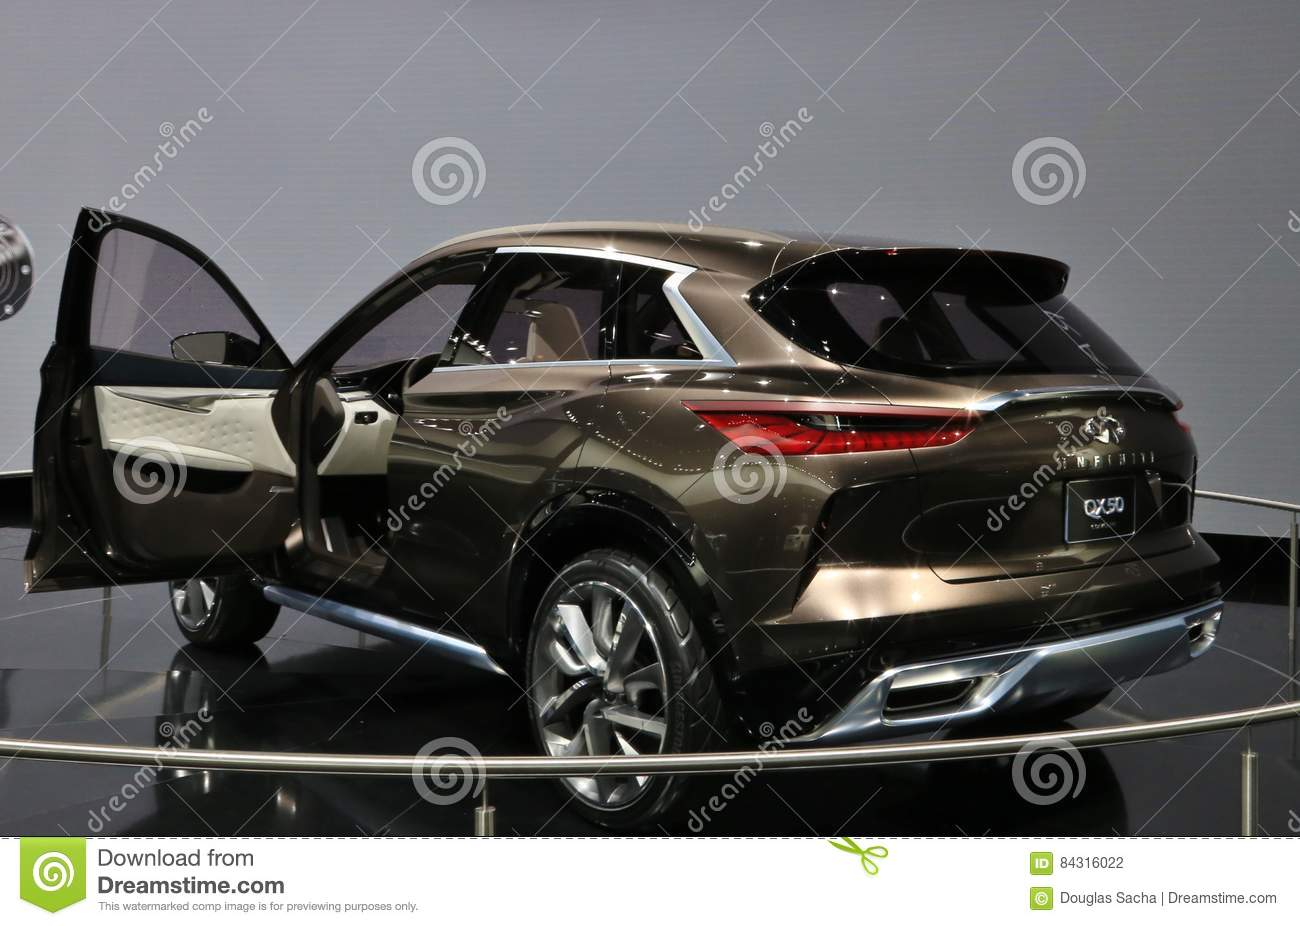 New Vehicles 2017 >> Infiniti On Display At The 2017 North American International